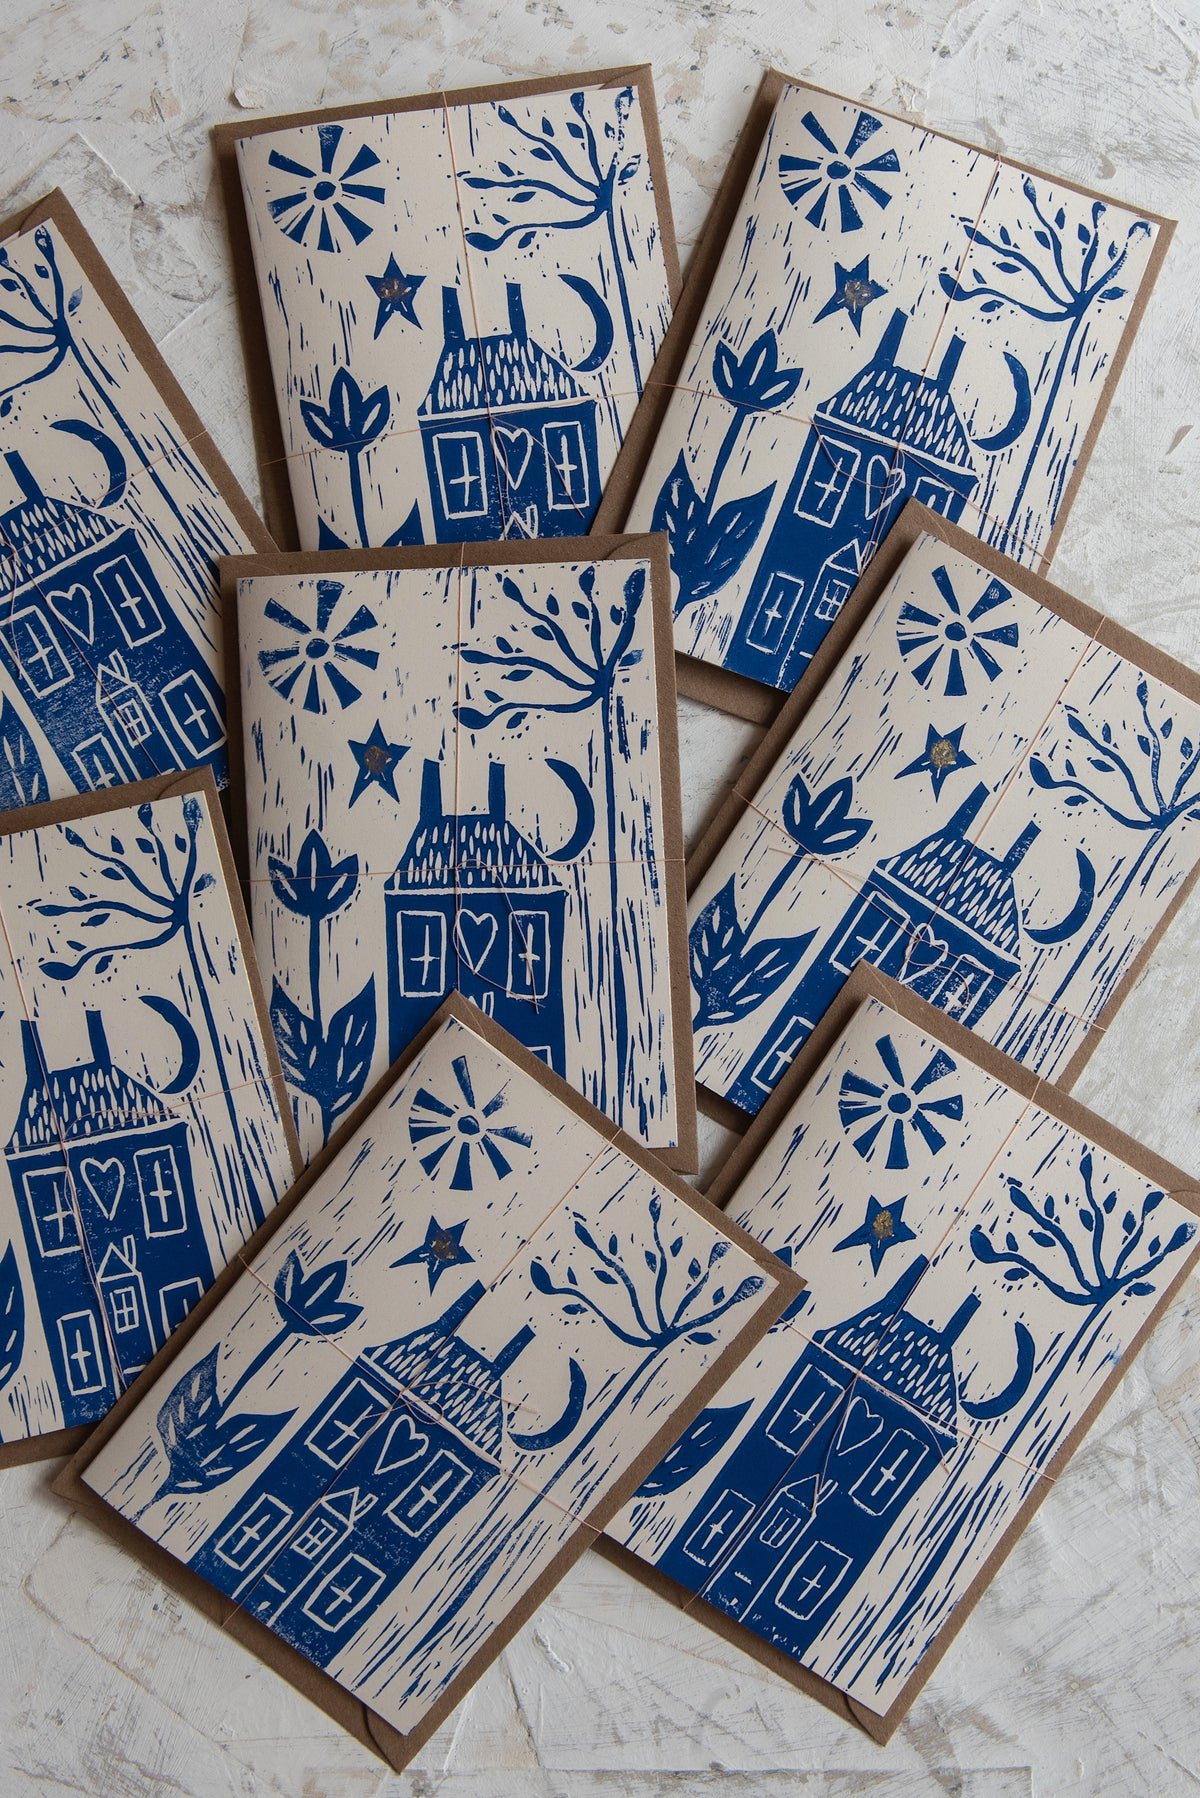 Image of 'Home Sweet Home' hand block printed greeting cards